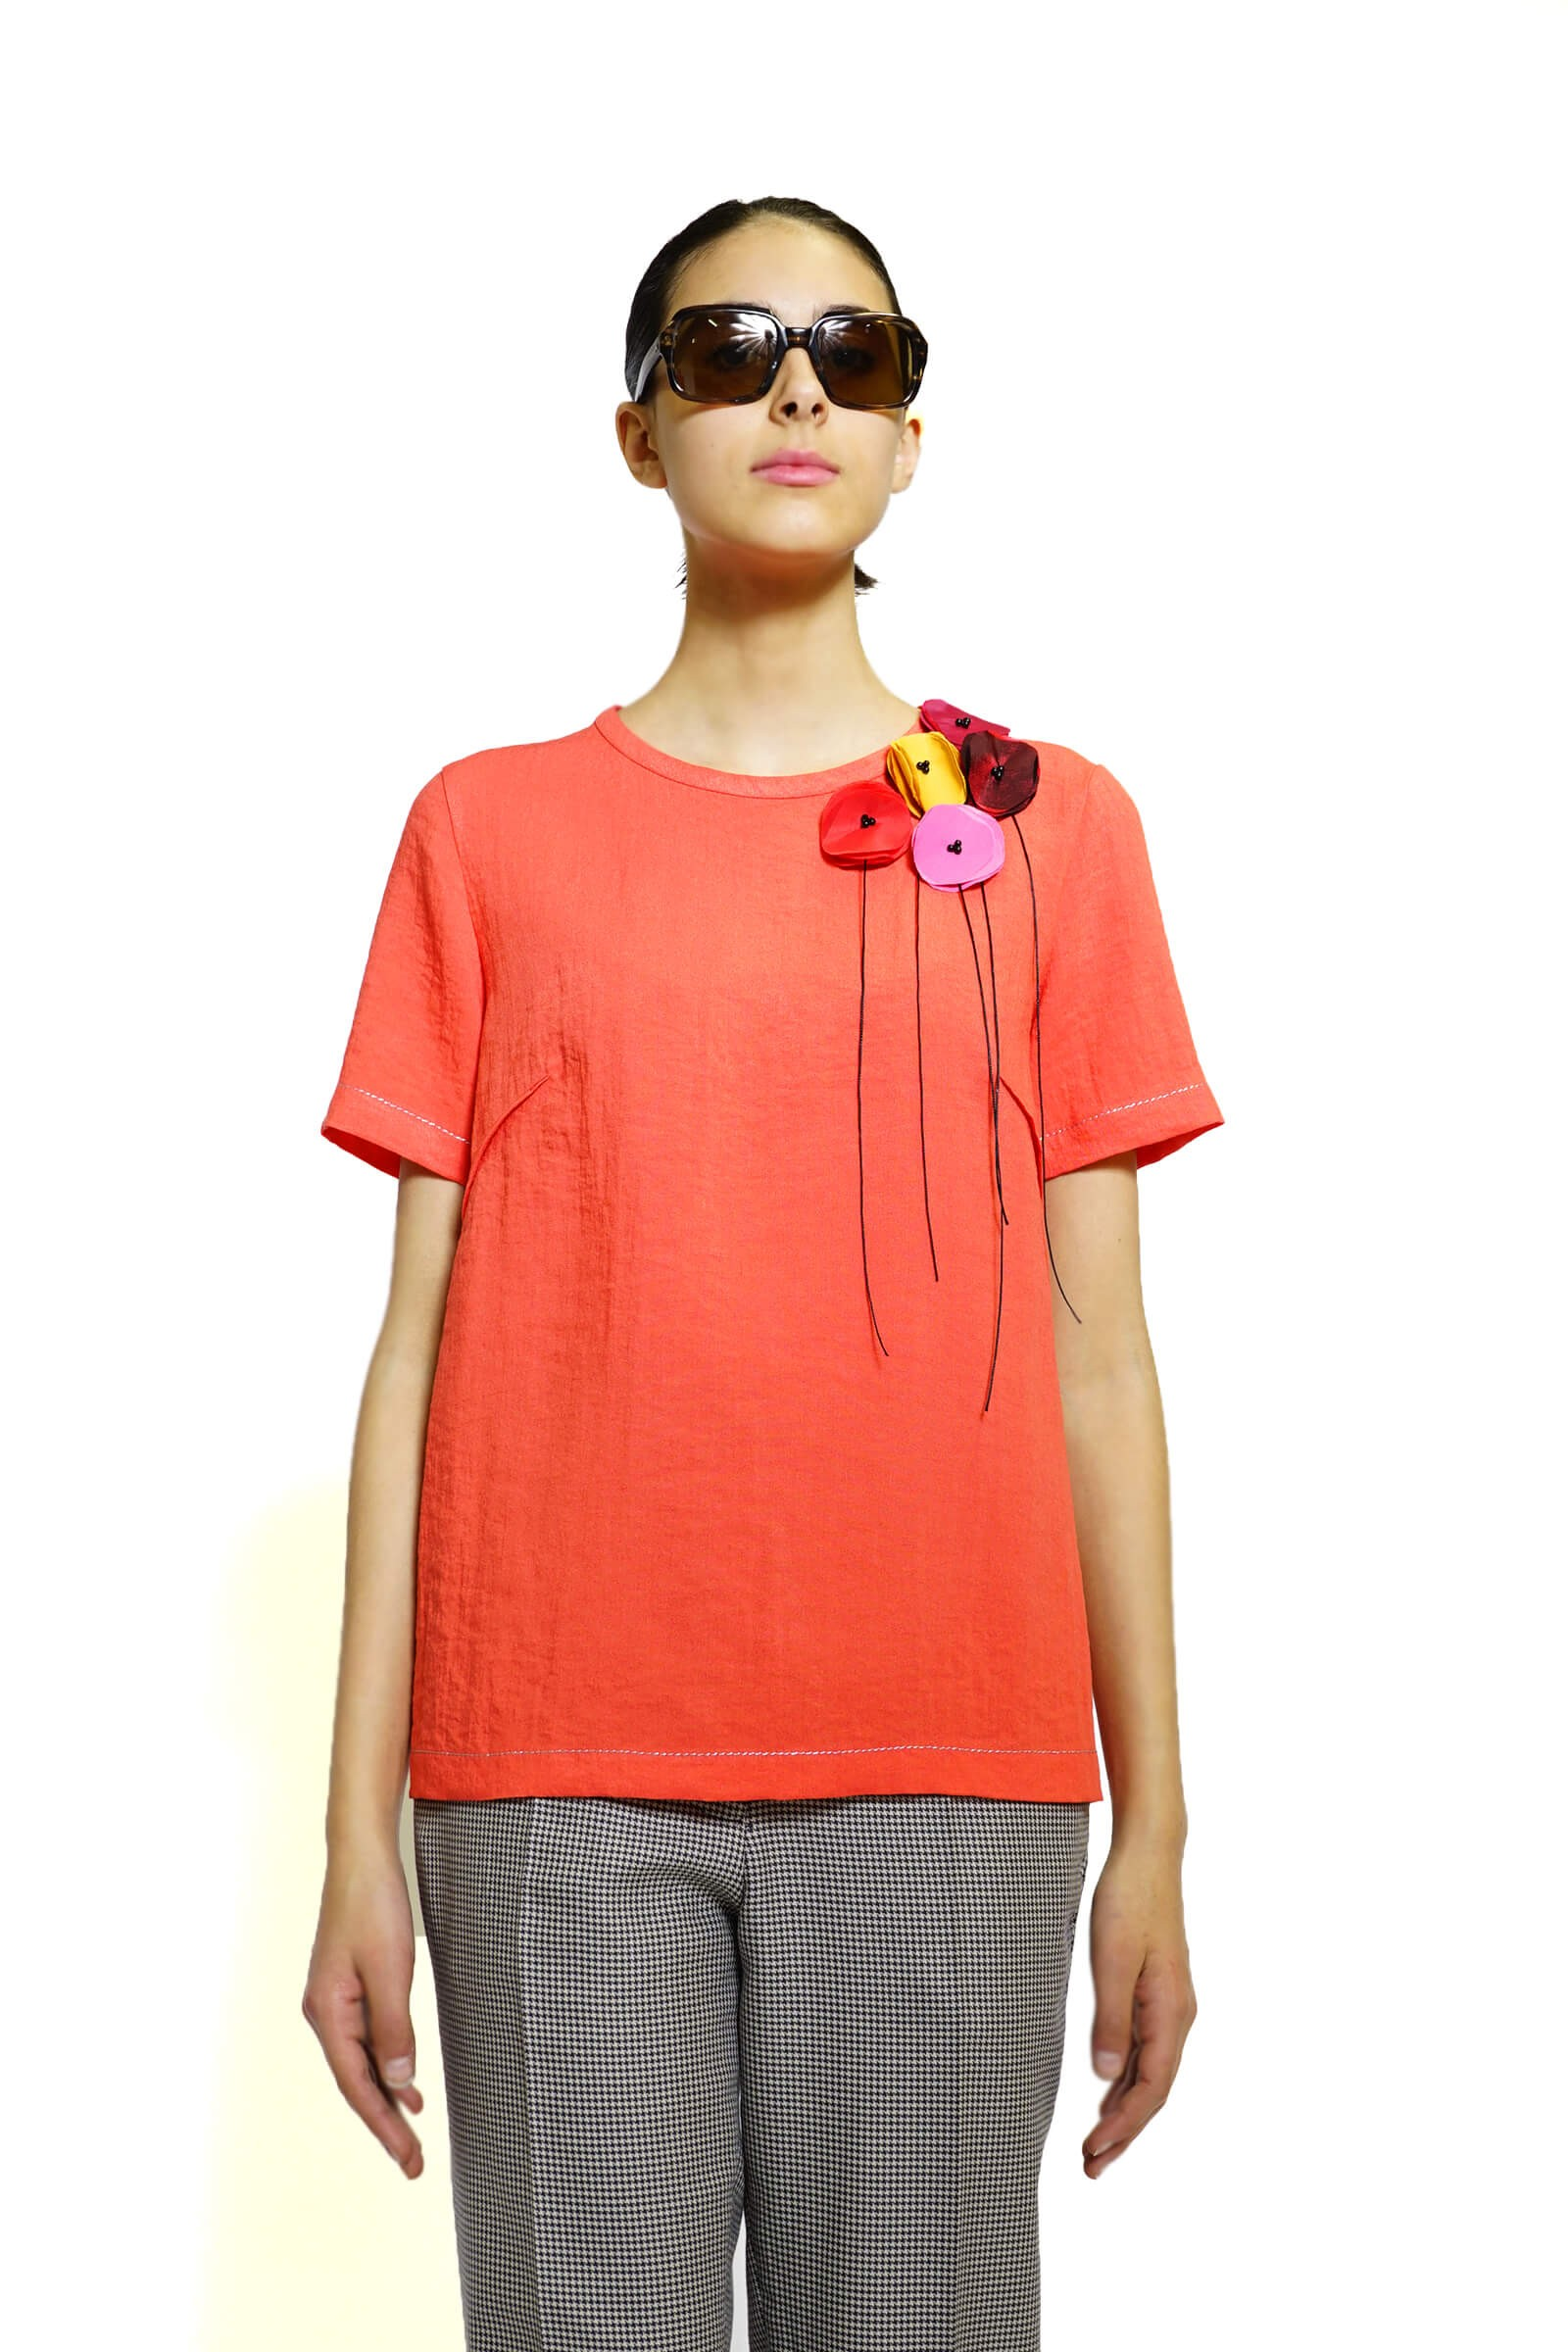 Red top with small poppies